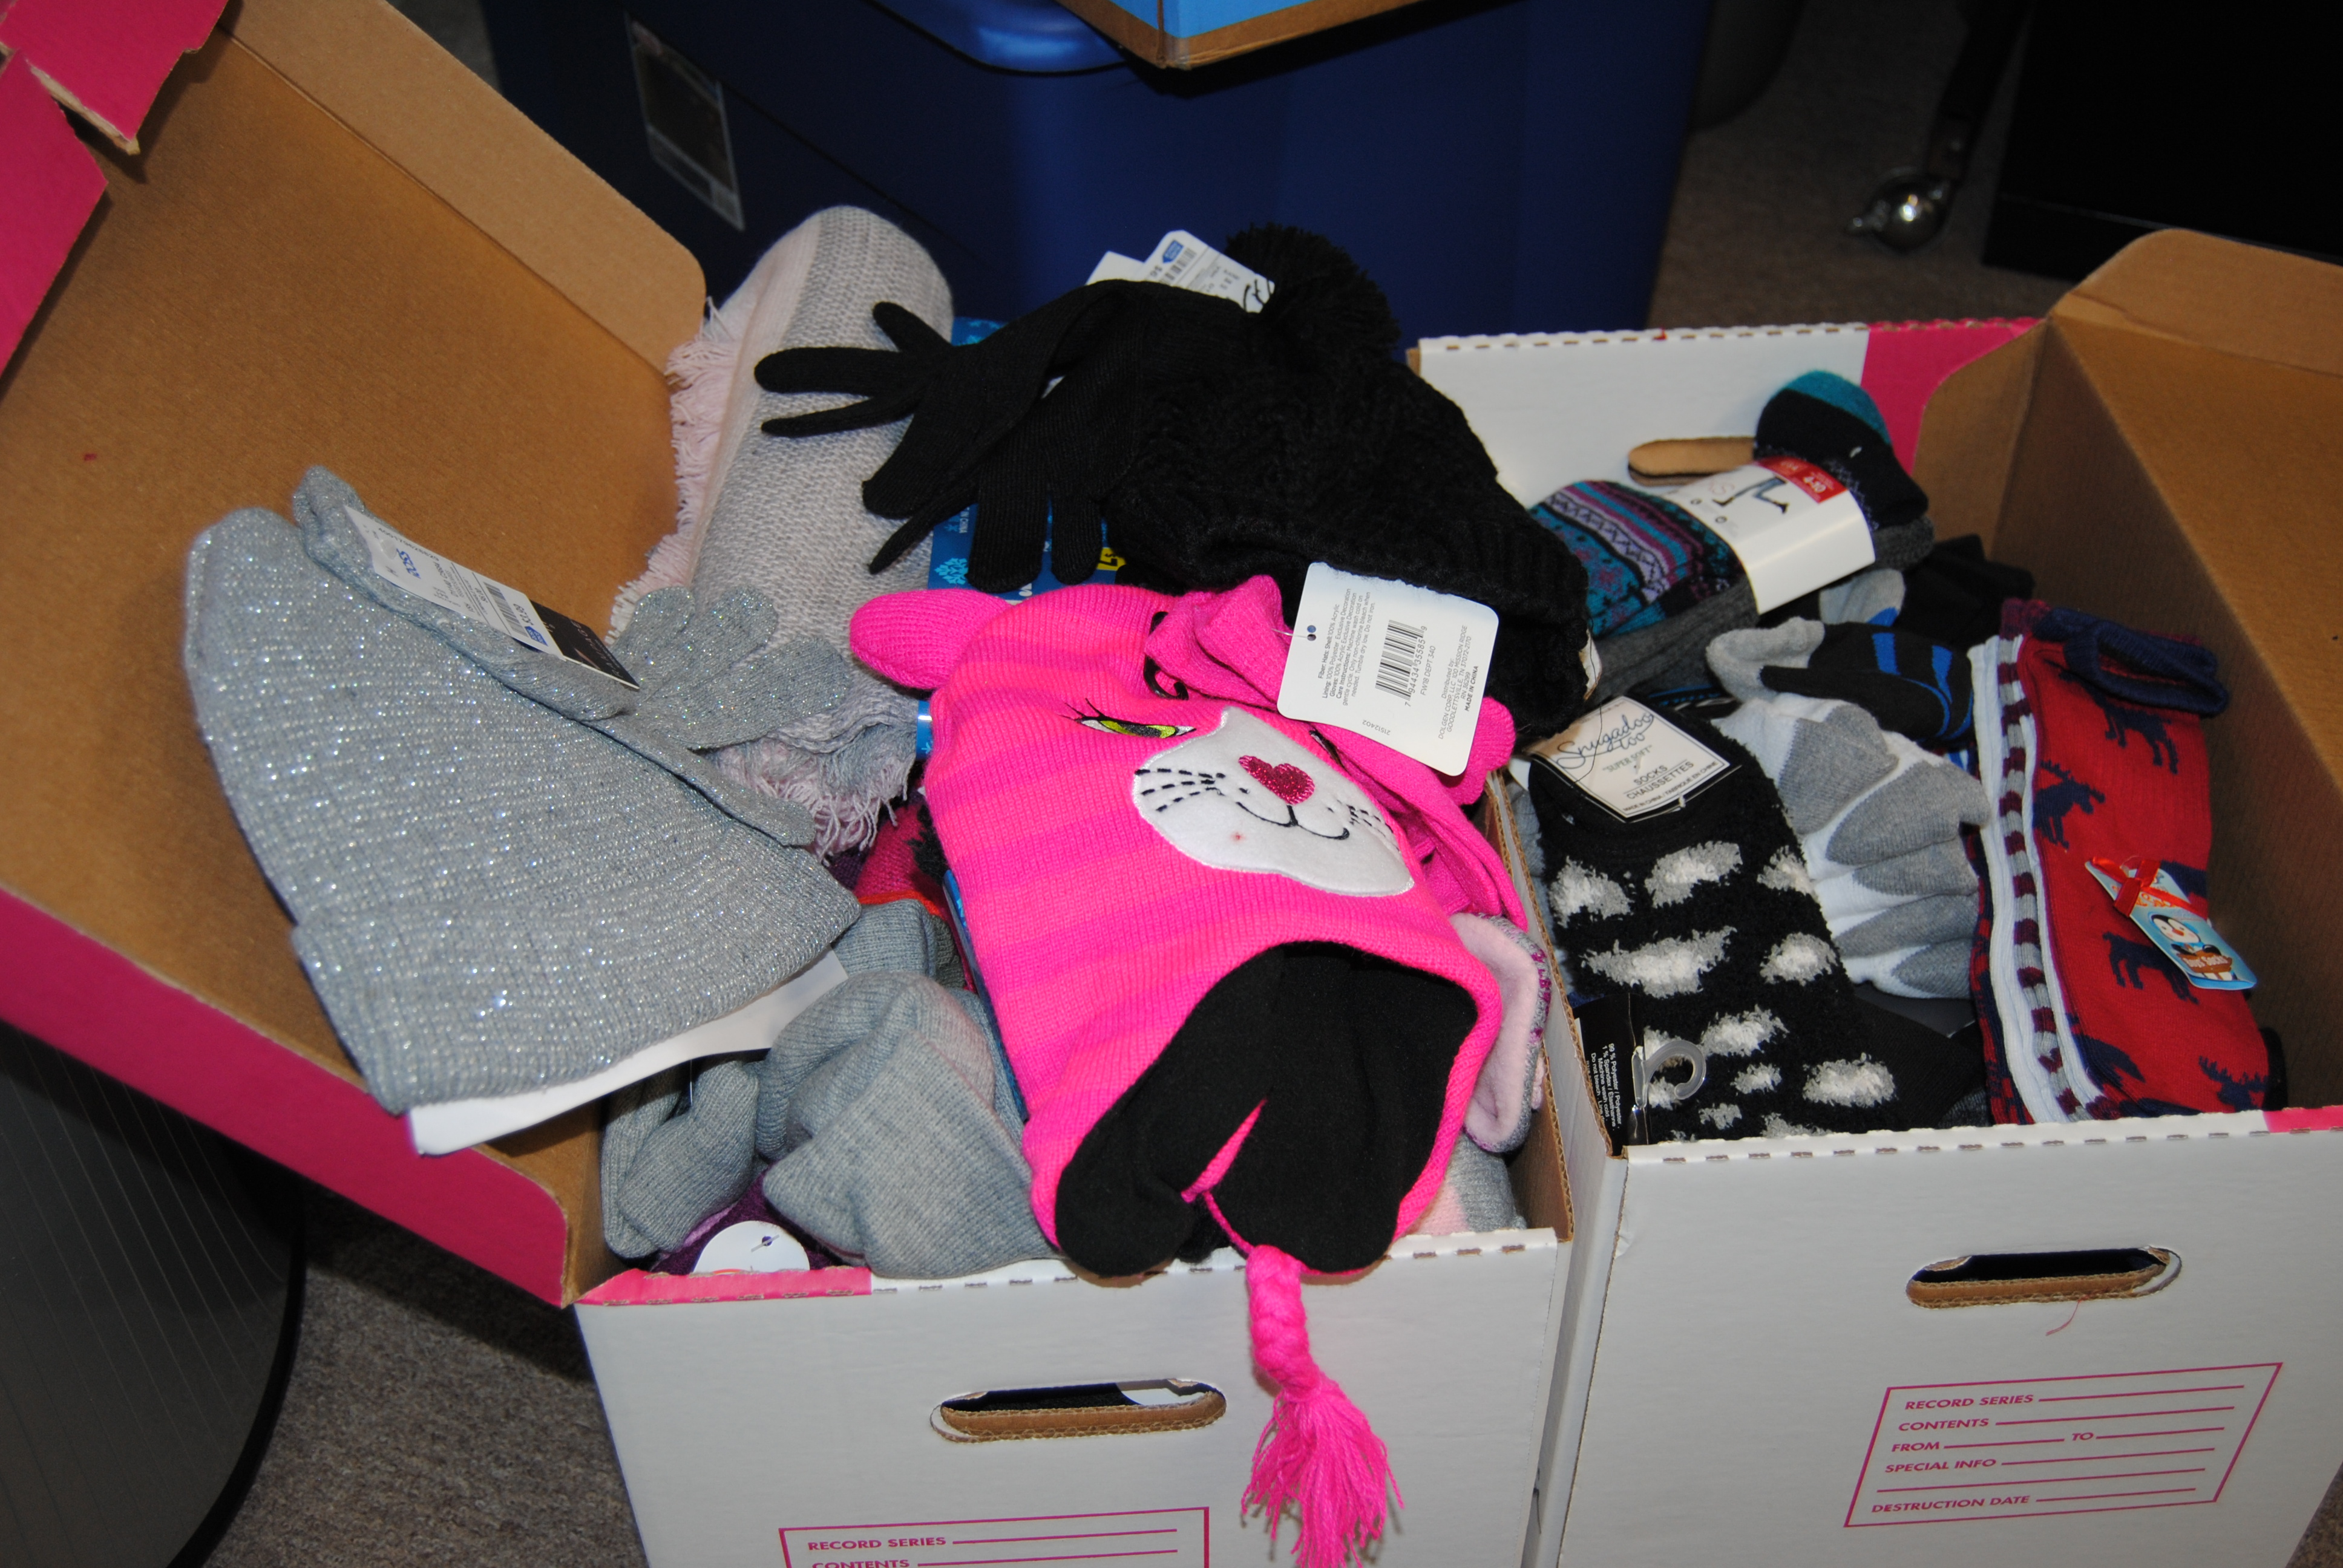 Winter Accessories Donated to NME from the East Kentucky Association of Realtors